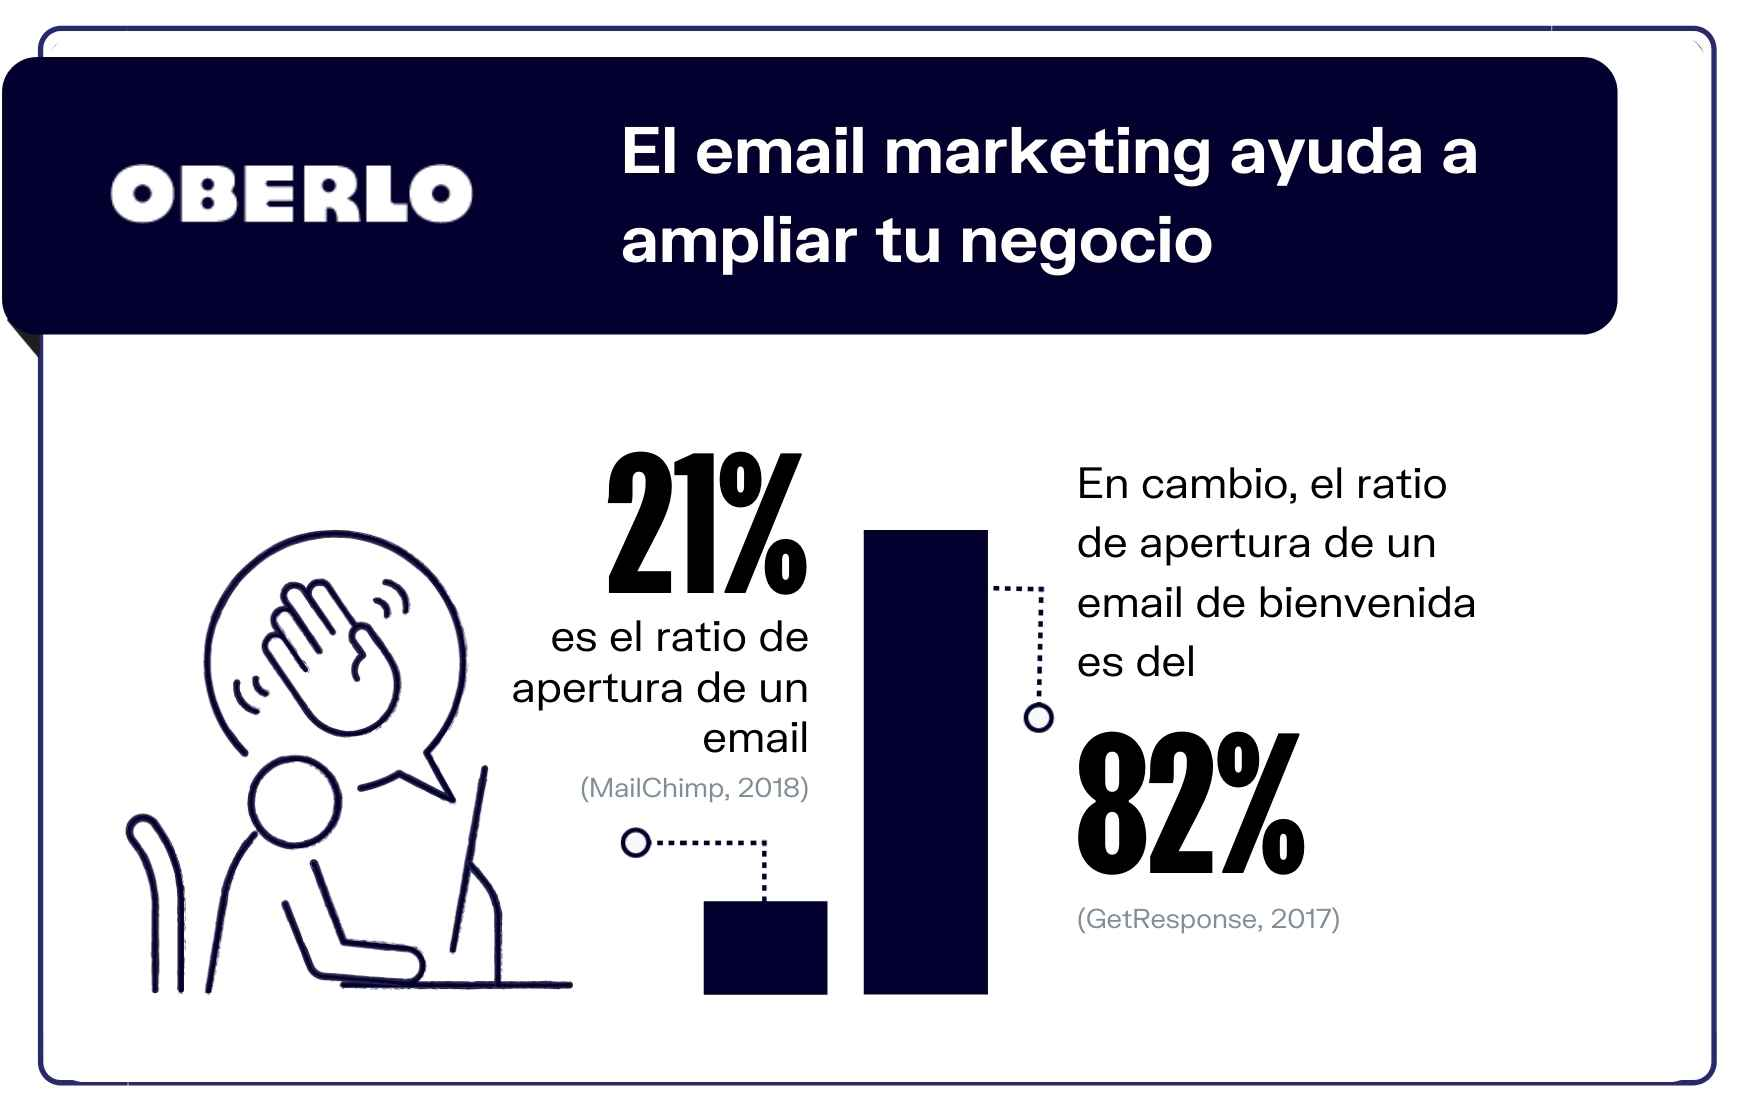 Marketing por email en cifras